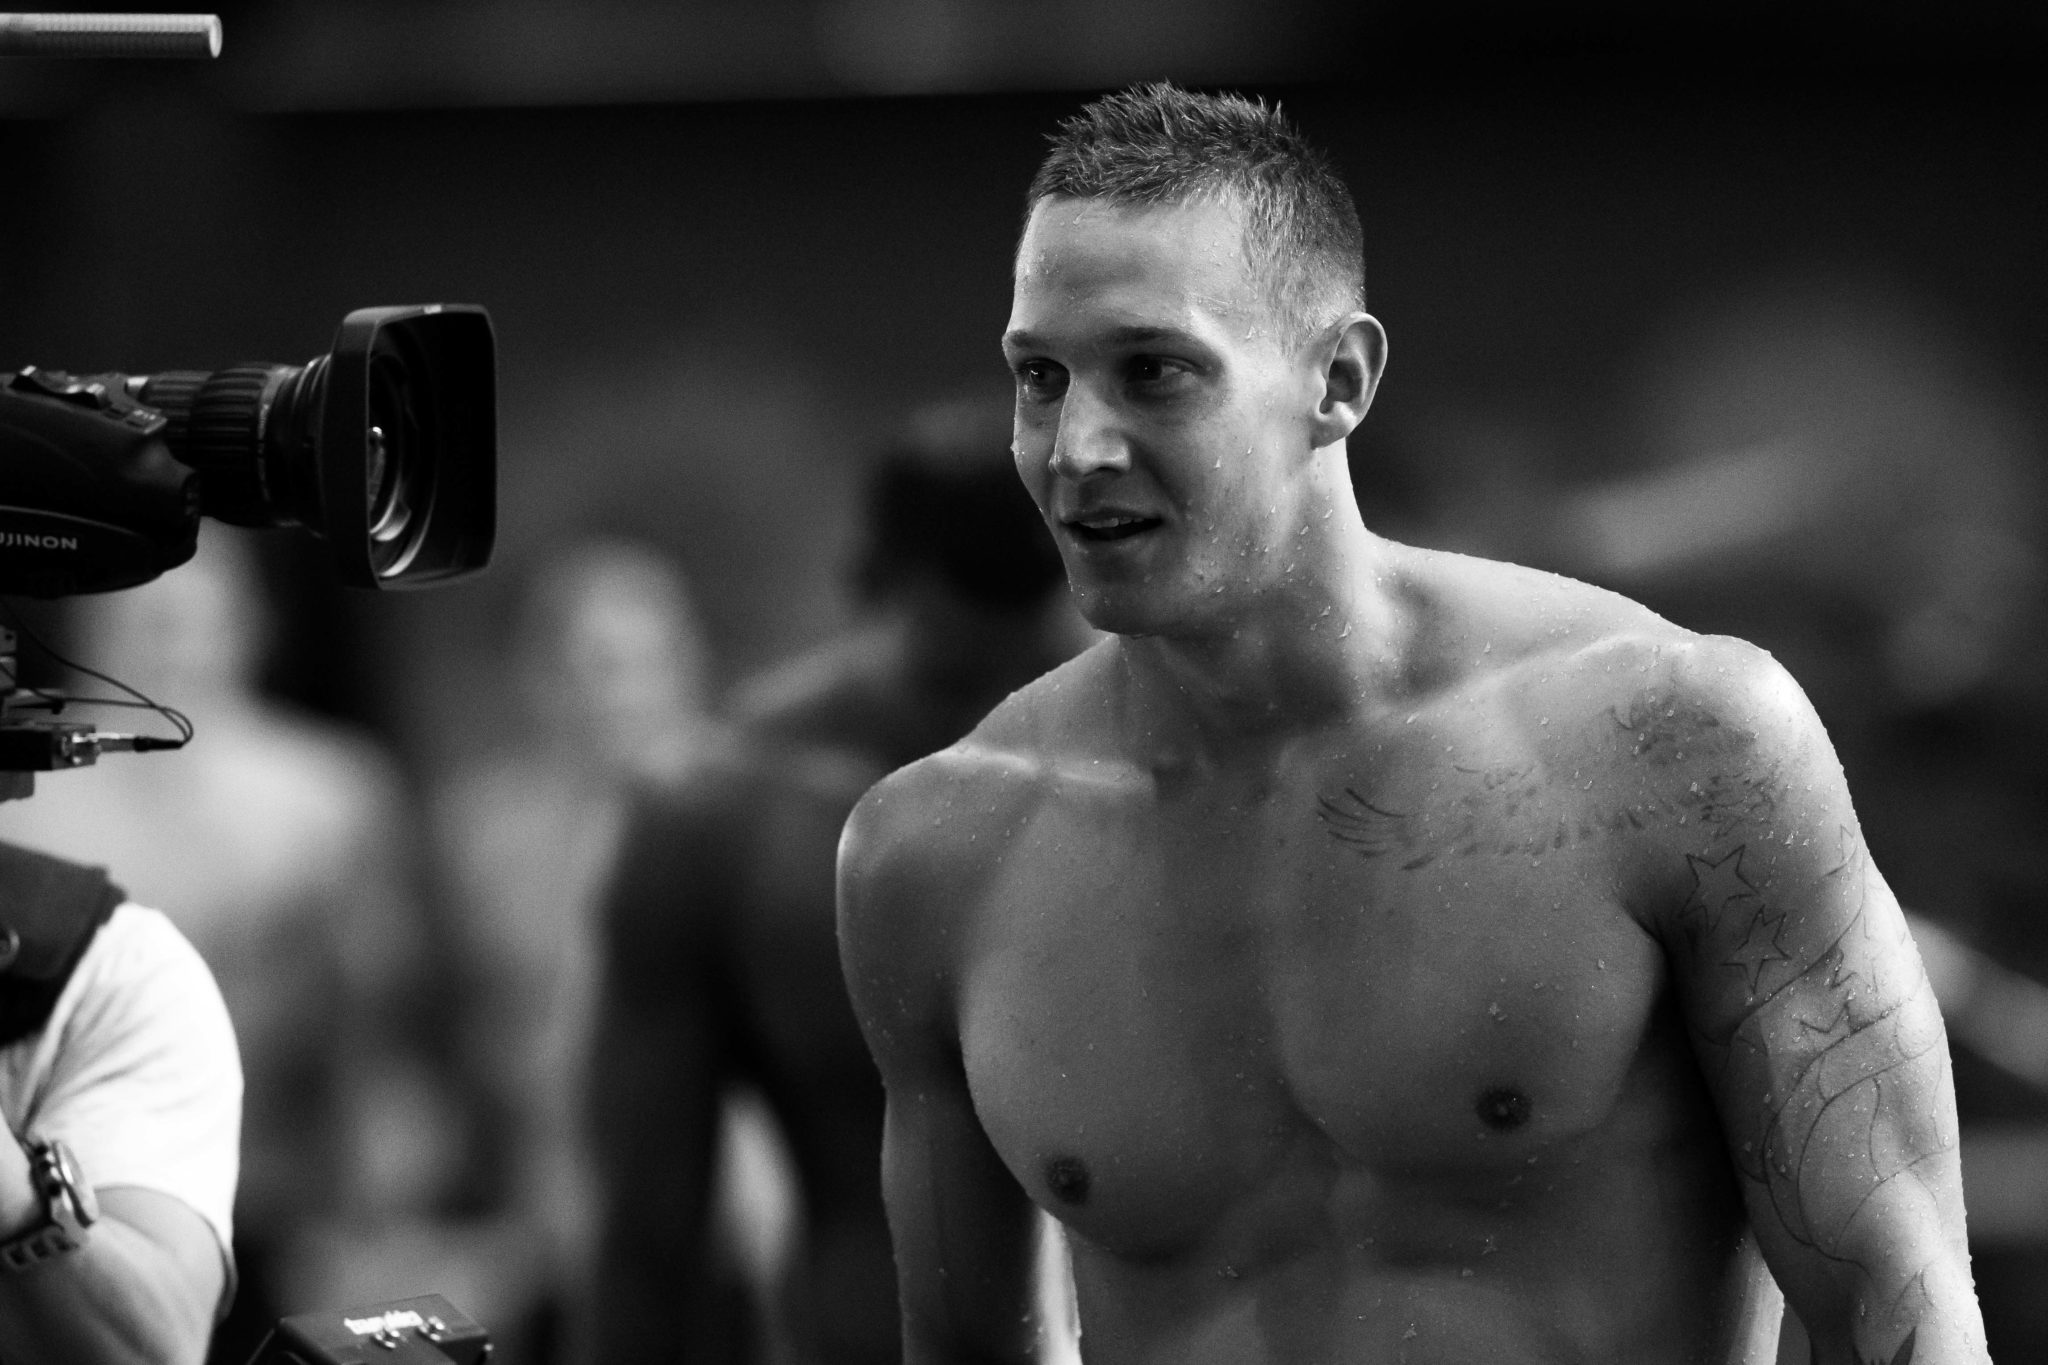 This year and 12th since the start of 2019 in the 200m free, which is not one of his primary events. Caeleb Dressel Will Swim 200 IM, Not 50 Free, at SEC ...